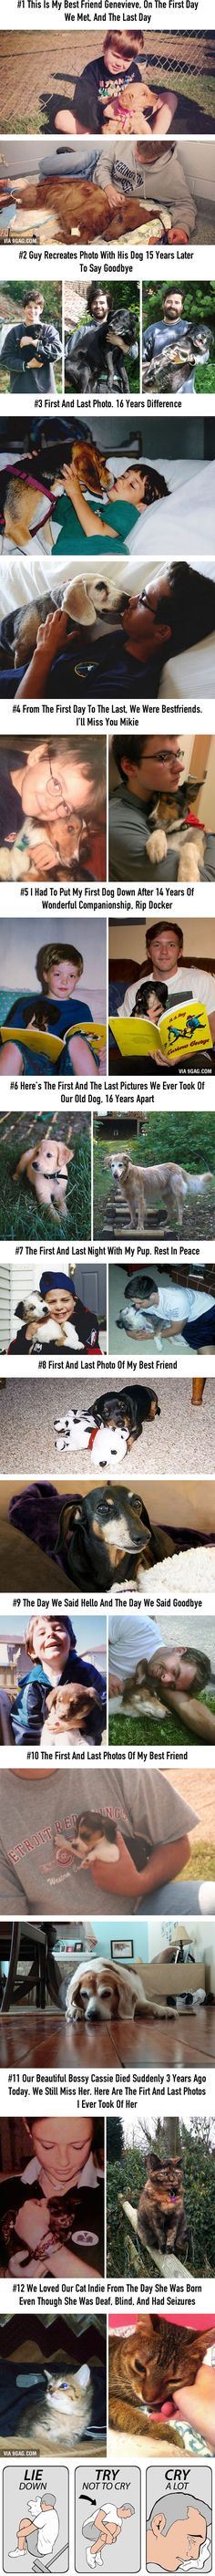 12 Heartbreaking First & Last Pics Of Pets That'll Make You Want To Hug Your Pet And Never Let Go